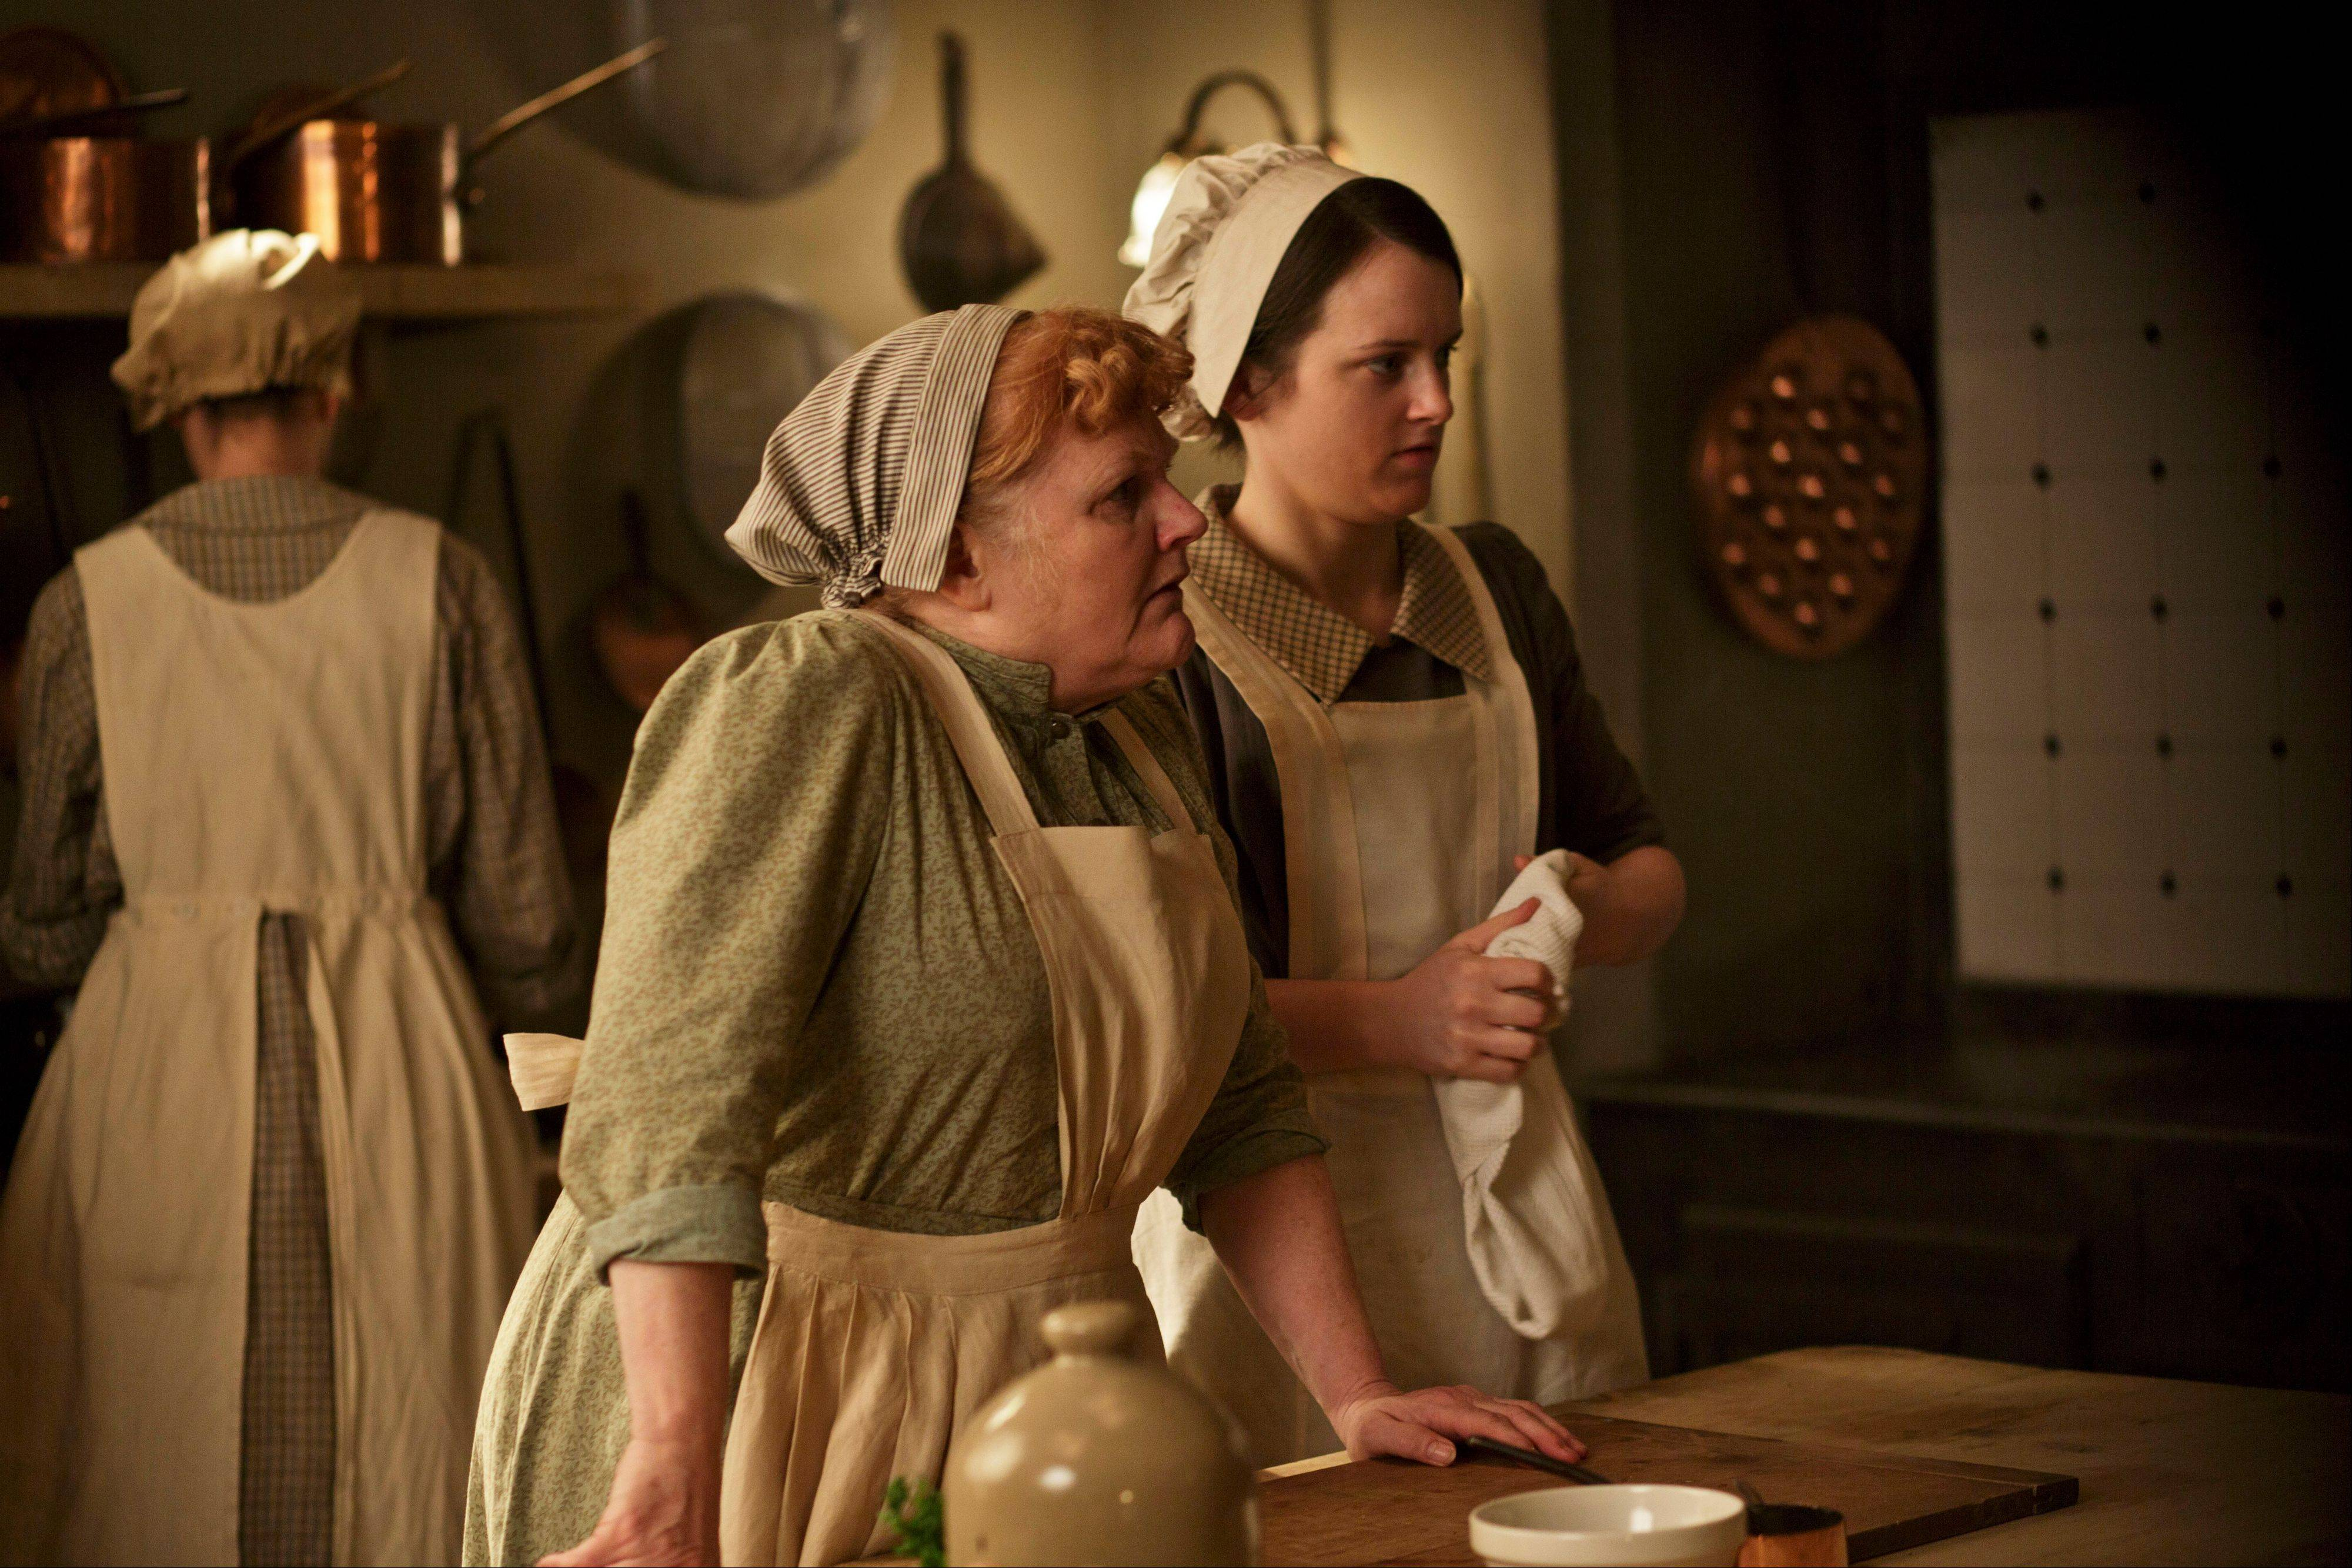 The newest threat to the culinary status quo, over which Mrs. Patmore (Lesley Nicol), with Daisy (Sophie McShera), reigns in the kitchen may just be the electric mixer.